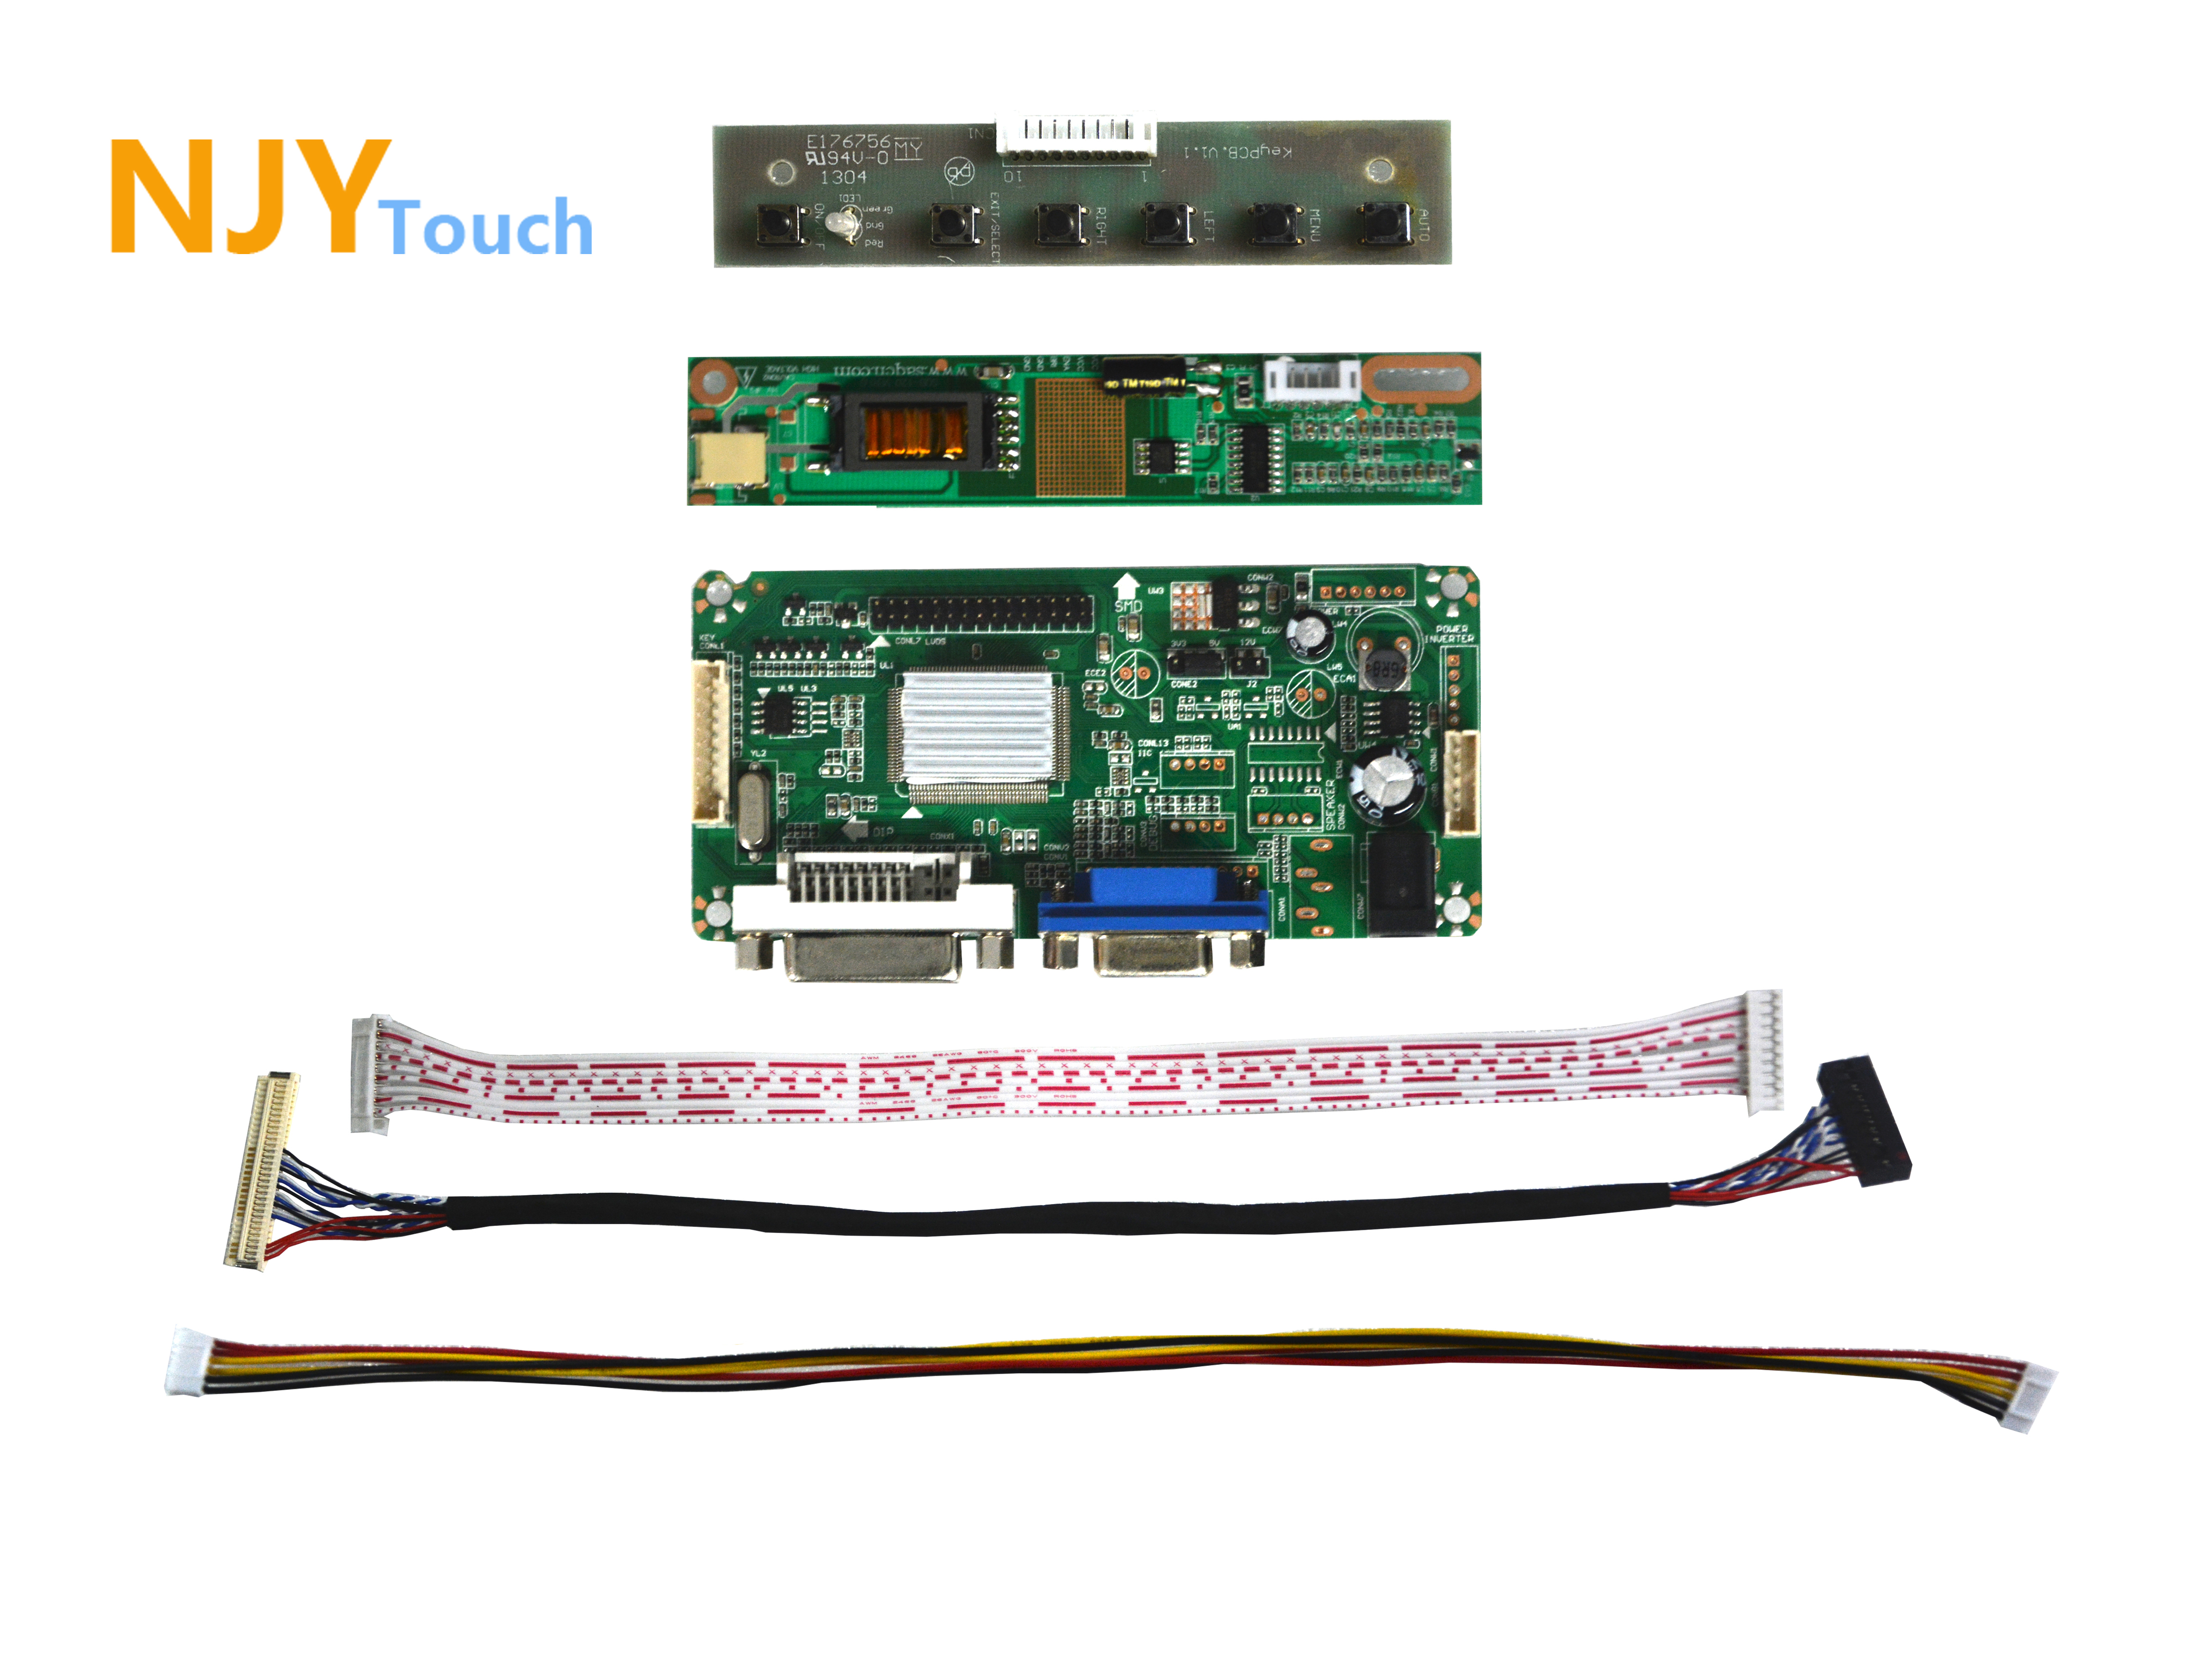 NJYTouch LM.R61 DVI VGA LCD Controller Driver Board For 15inch LTN150XB-L01 LTN150XF-L02 LTN150XG-L02 1024x768 LED Screen